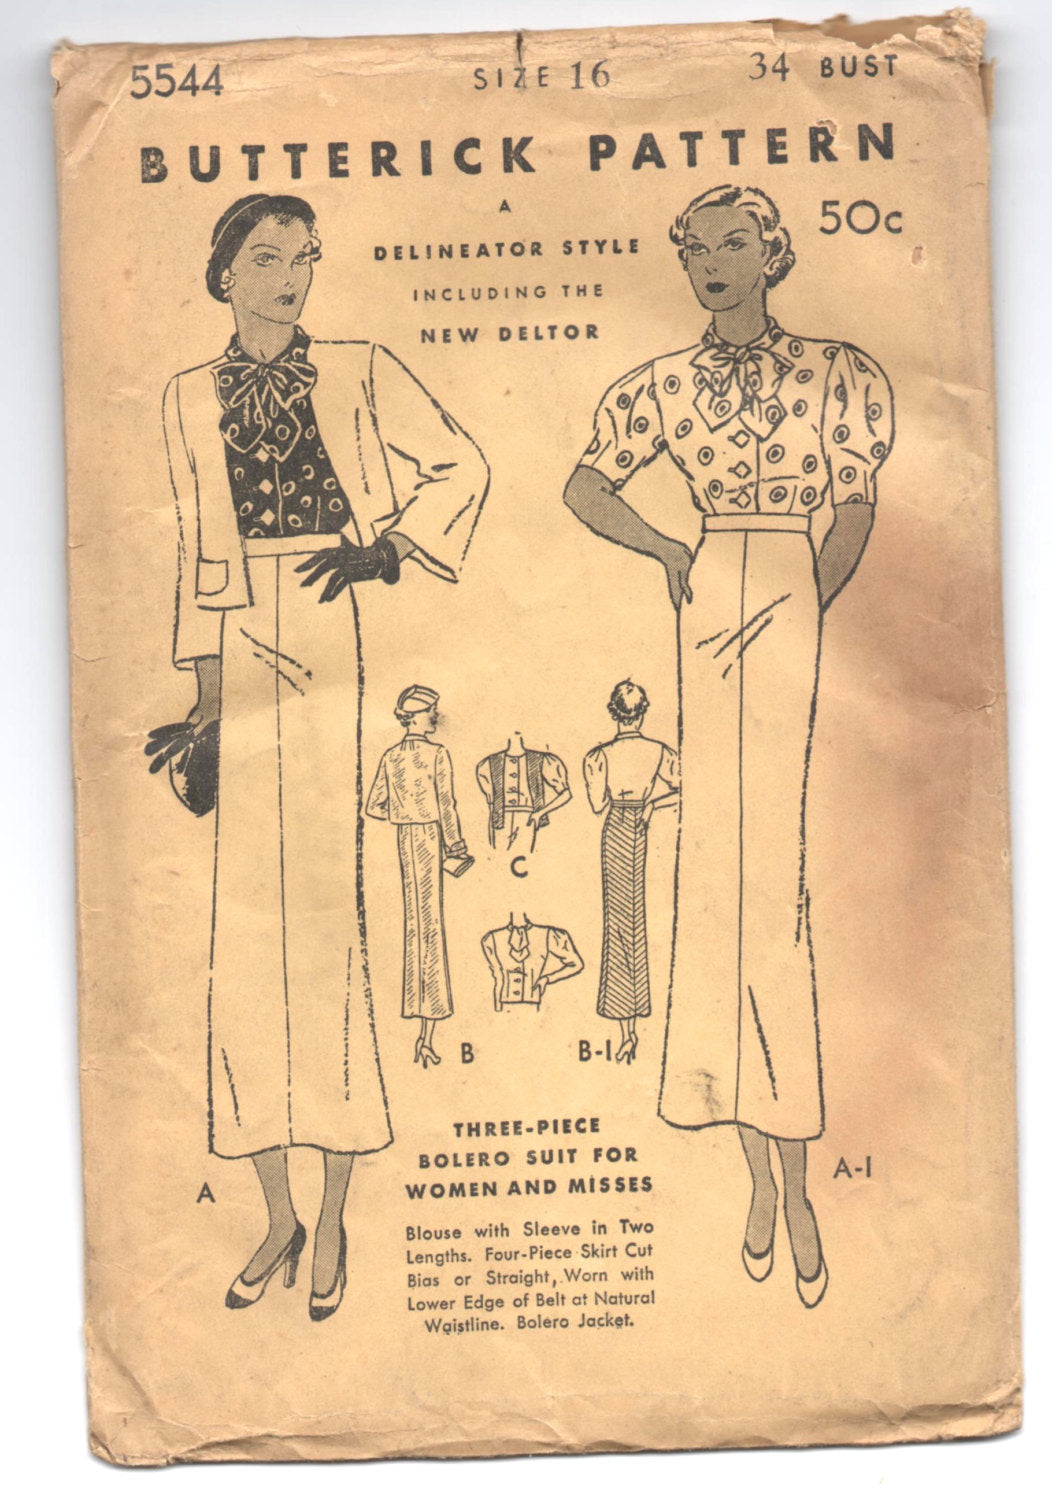 1930's Butterick Three-Piece Bolero Suit with Bow-tie collar - Bust 34